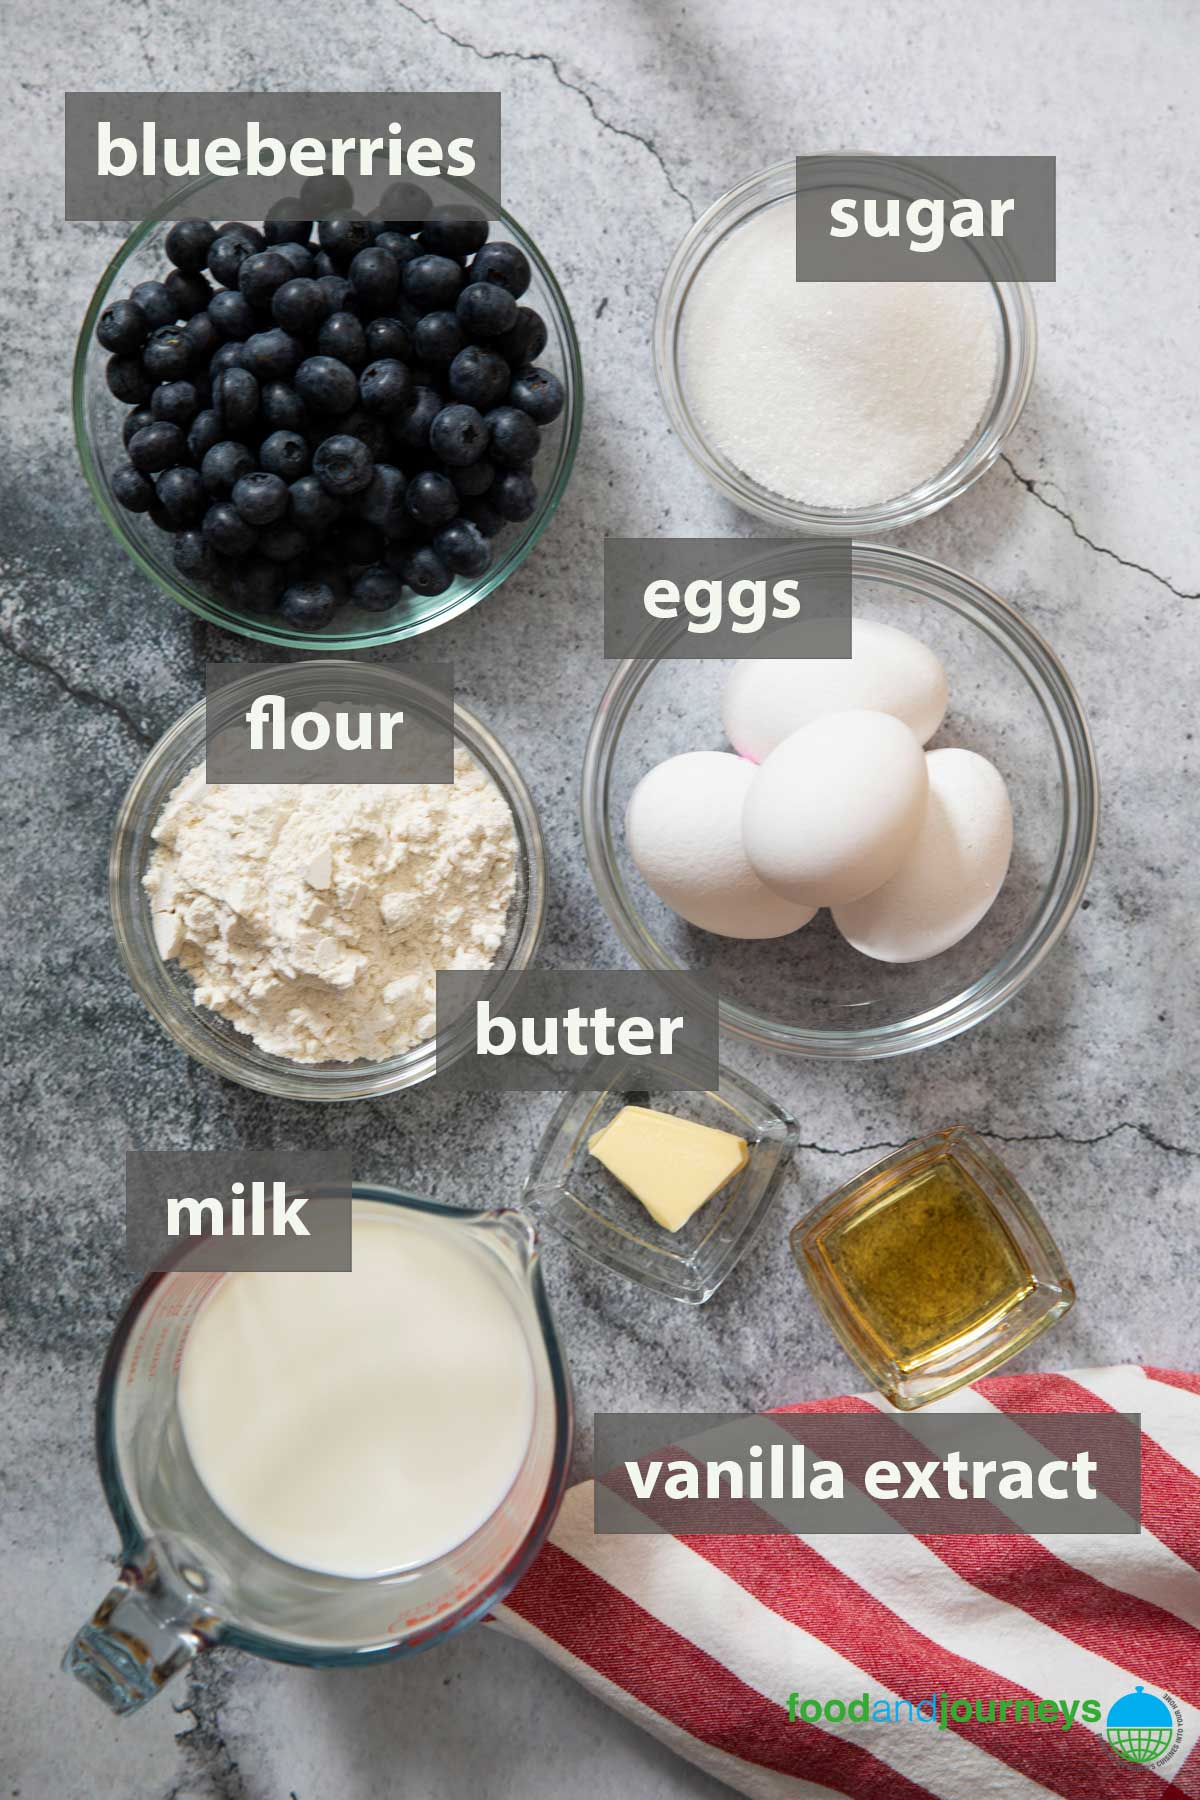 An image showing all the ingredients you need to prepare a simple clafoutis.